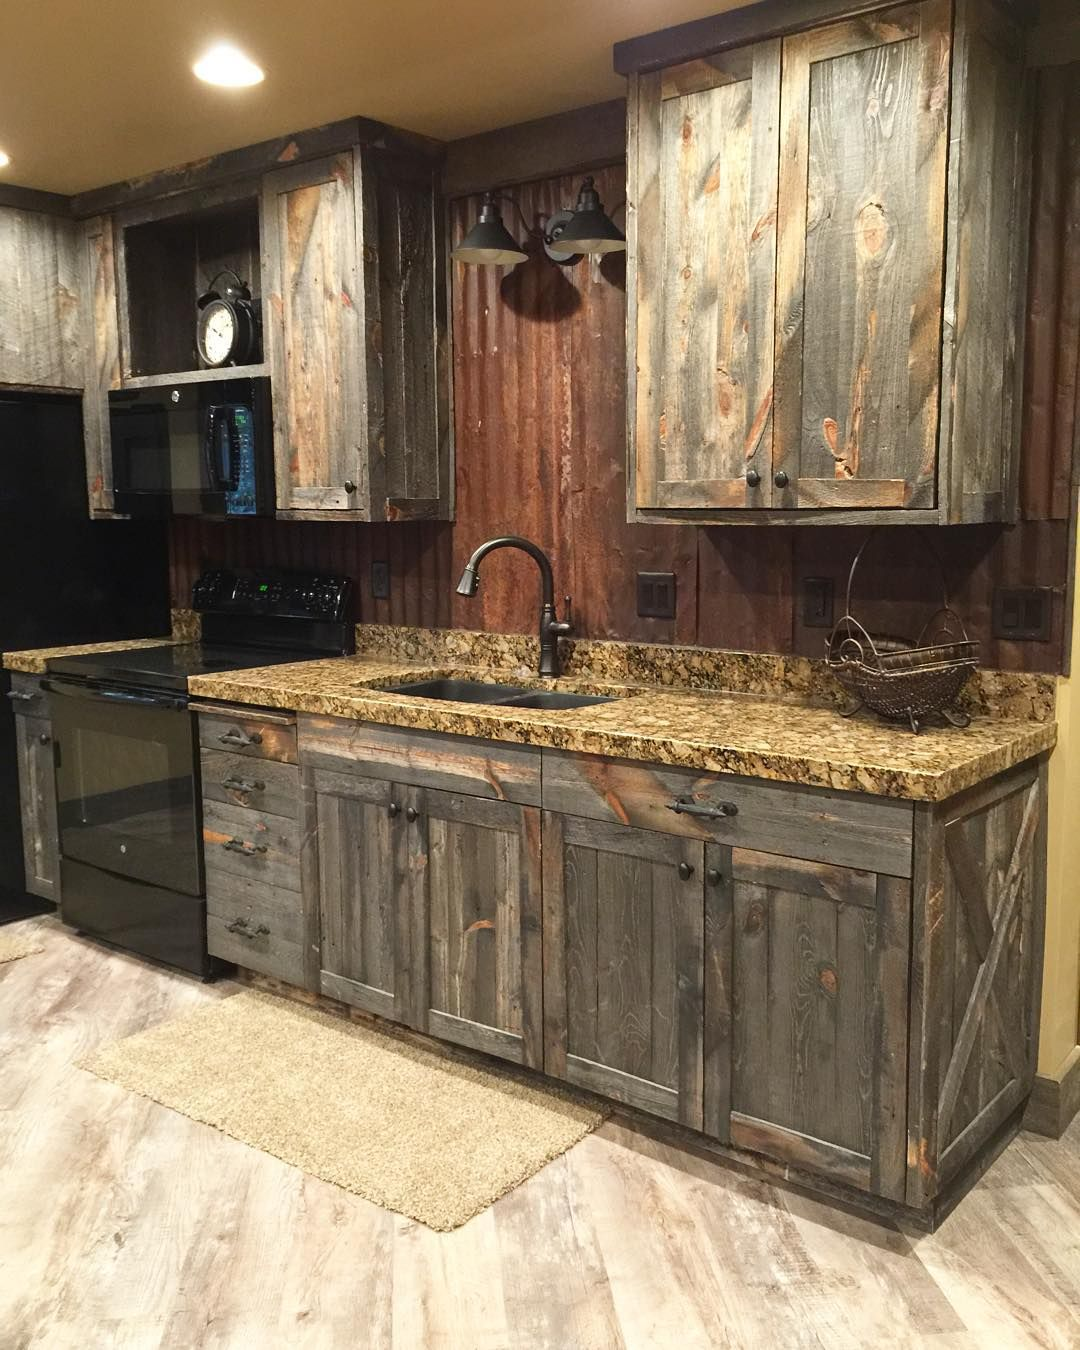 A little barnwood kitchen cabinets and corrugated steel Newwood cupboards